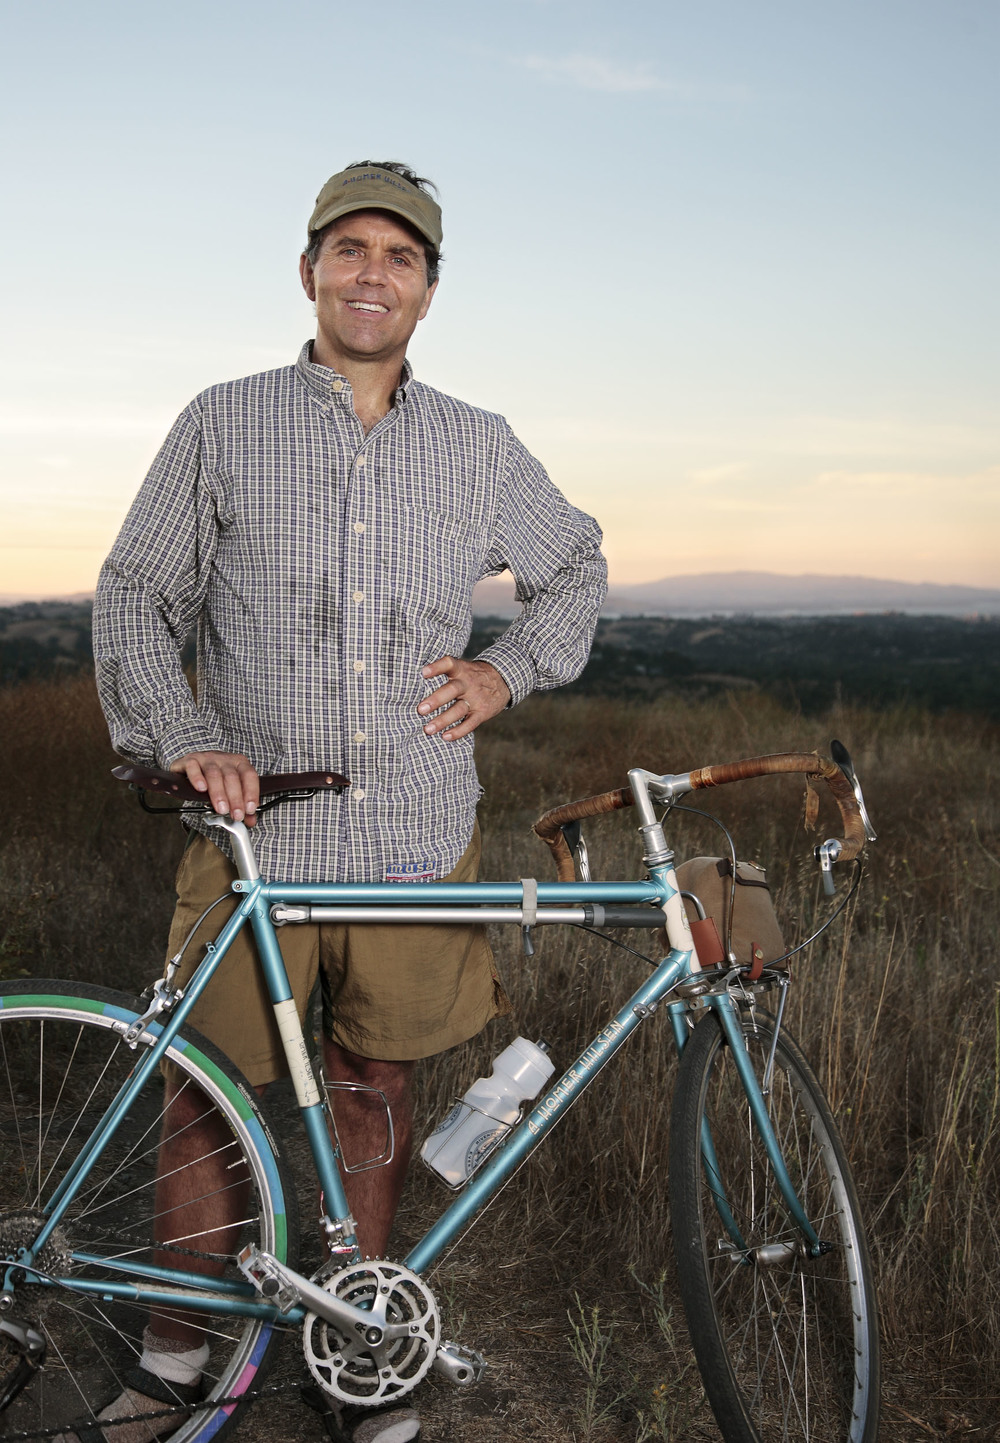 Grant Peterson, founder Rivendell Bicycle Works